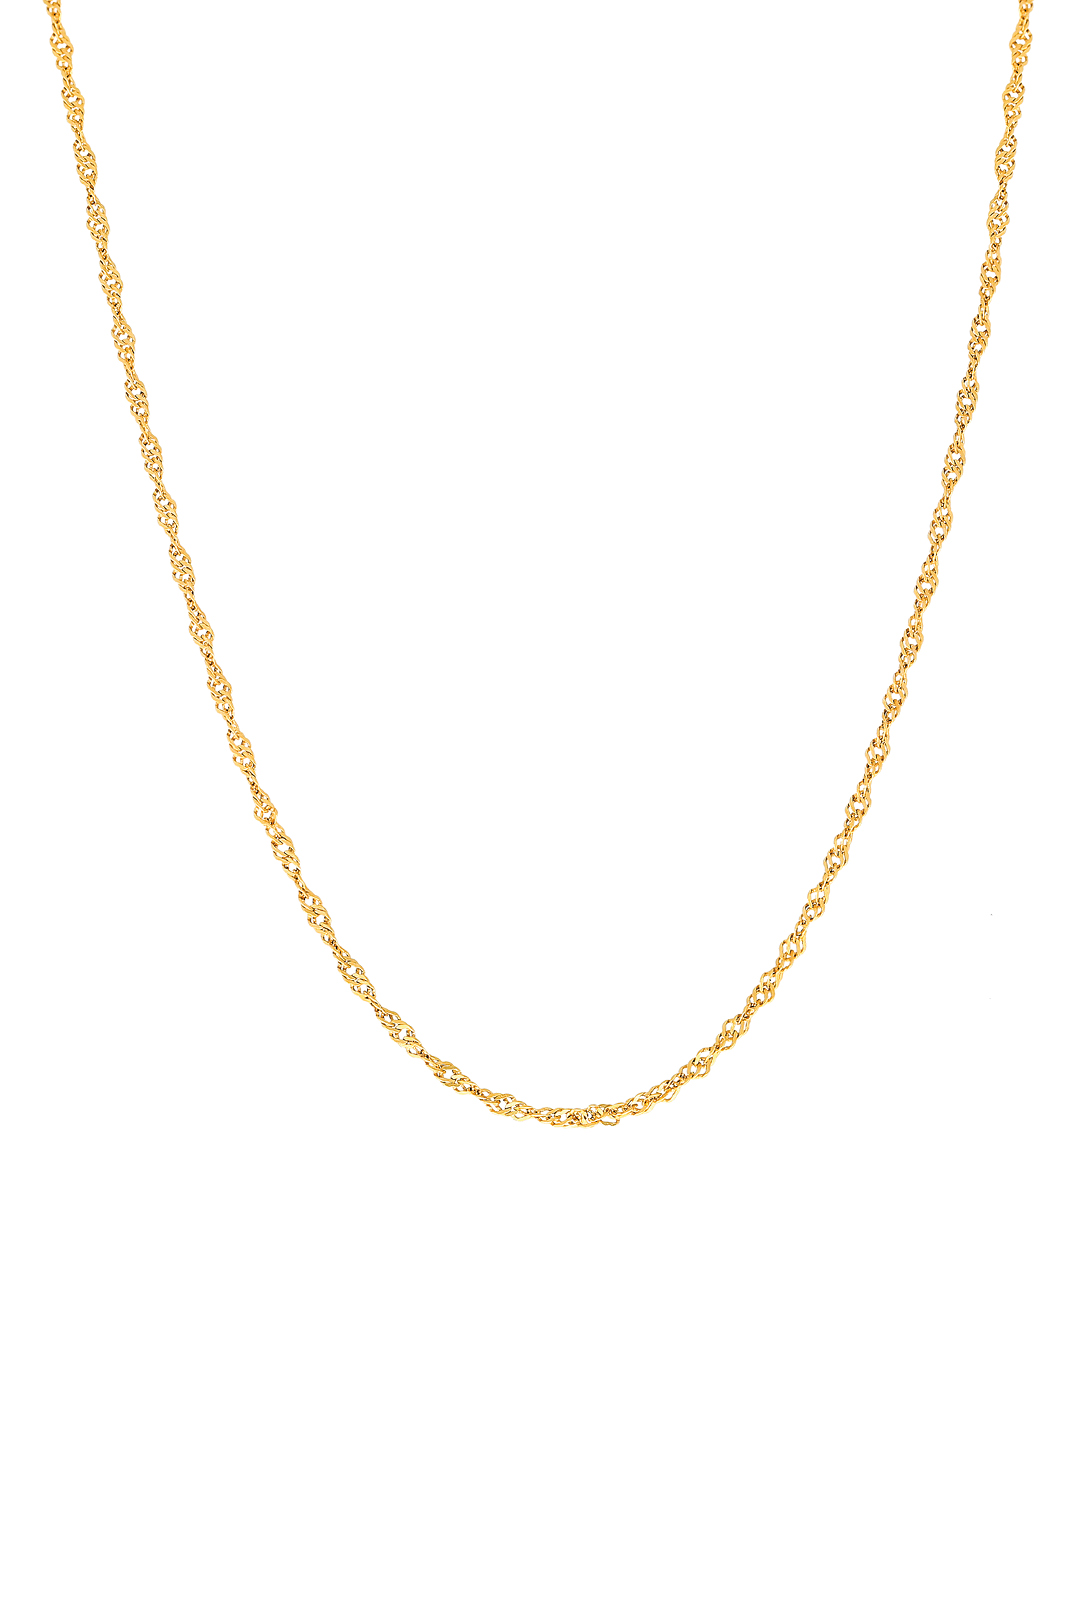 PLAIN HELIX CHAIN NECKLACE